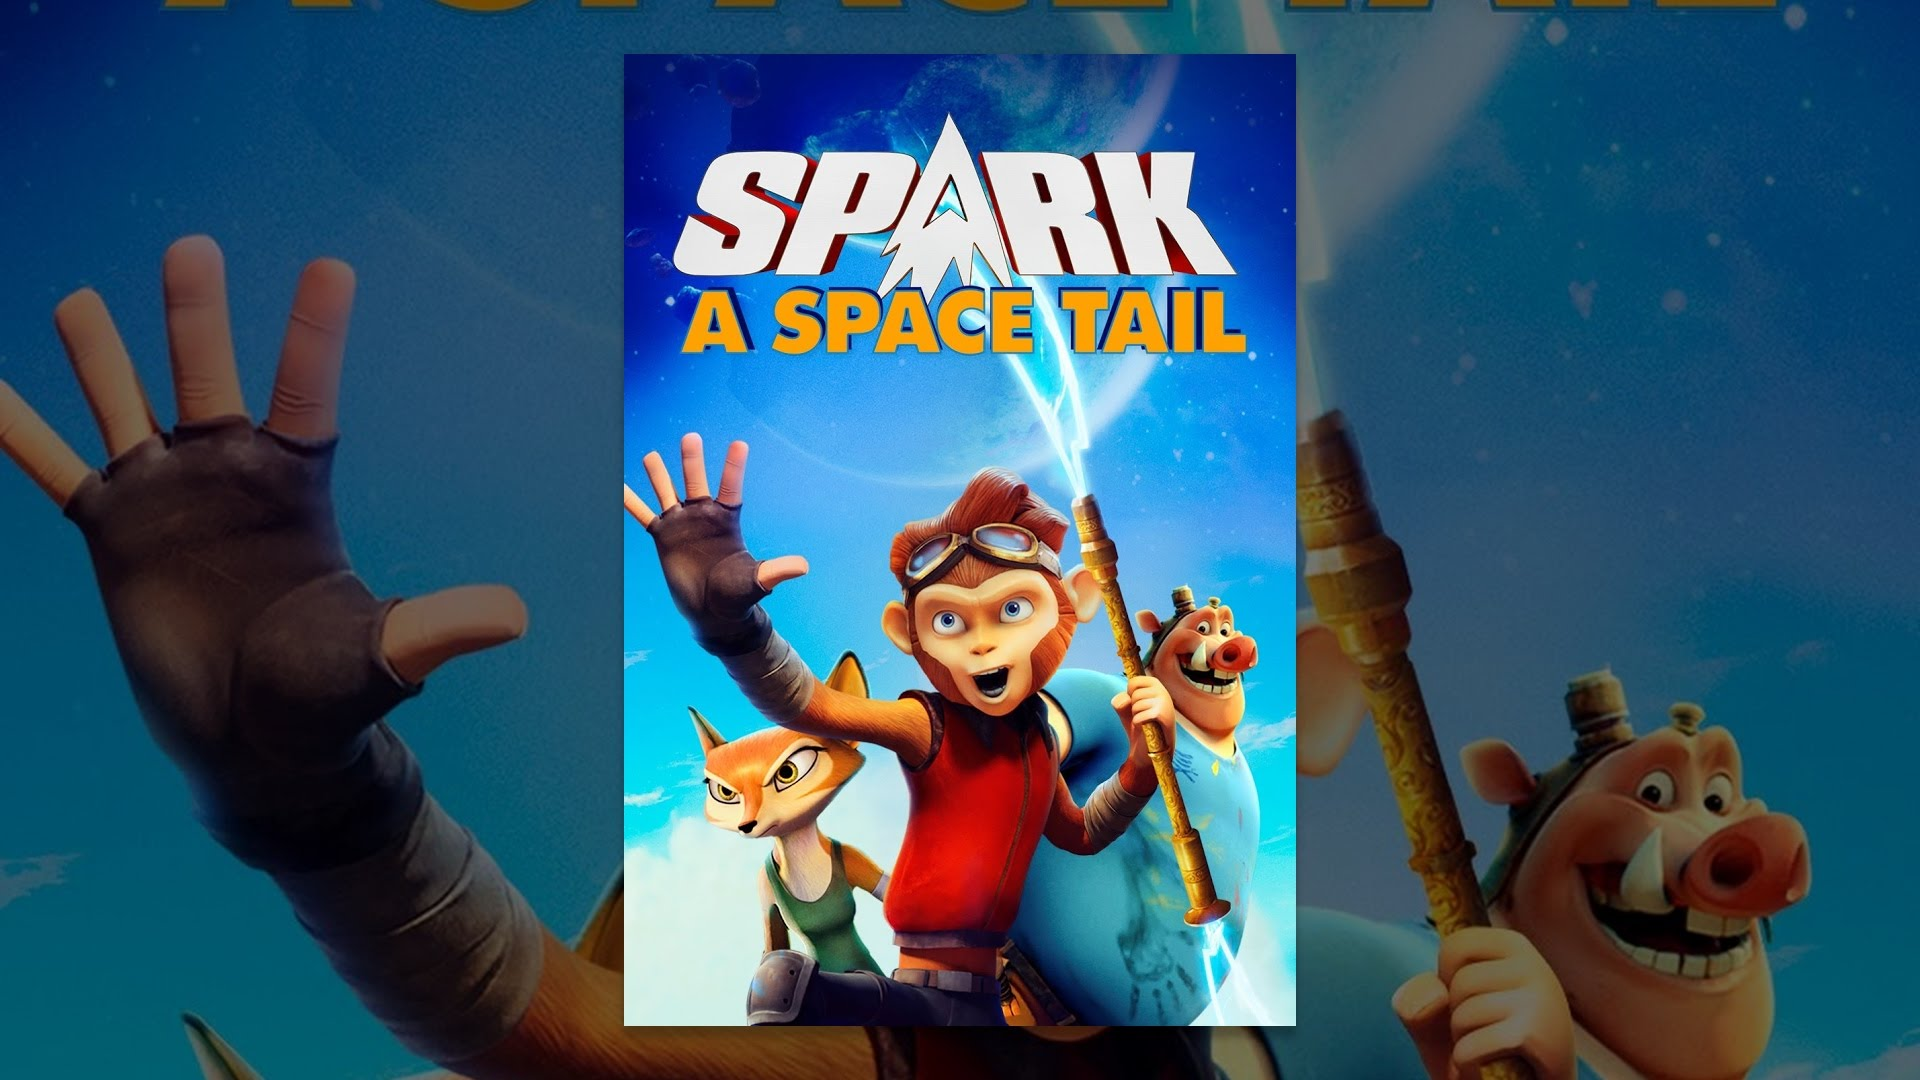 Download Spark: A Space Tail